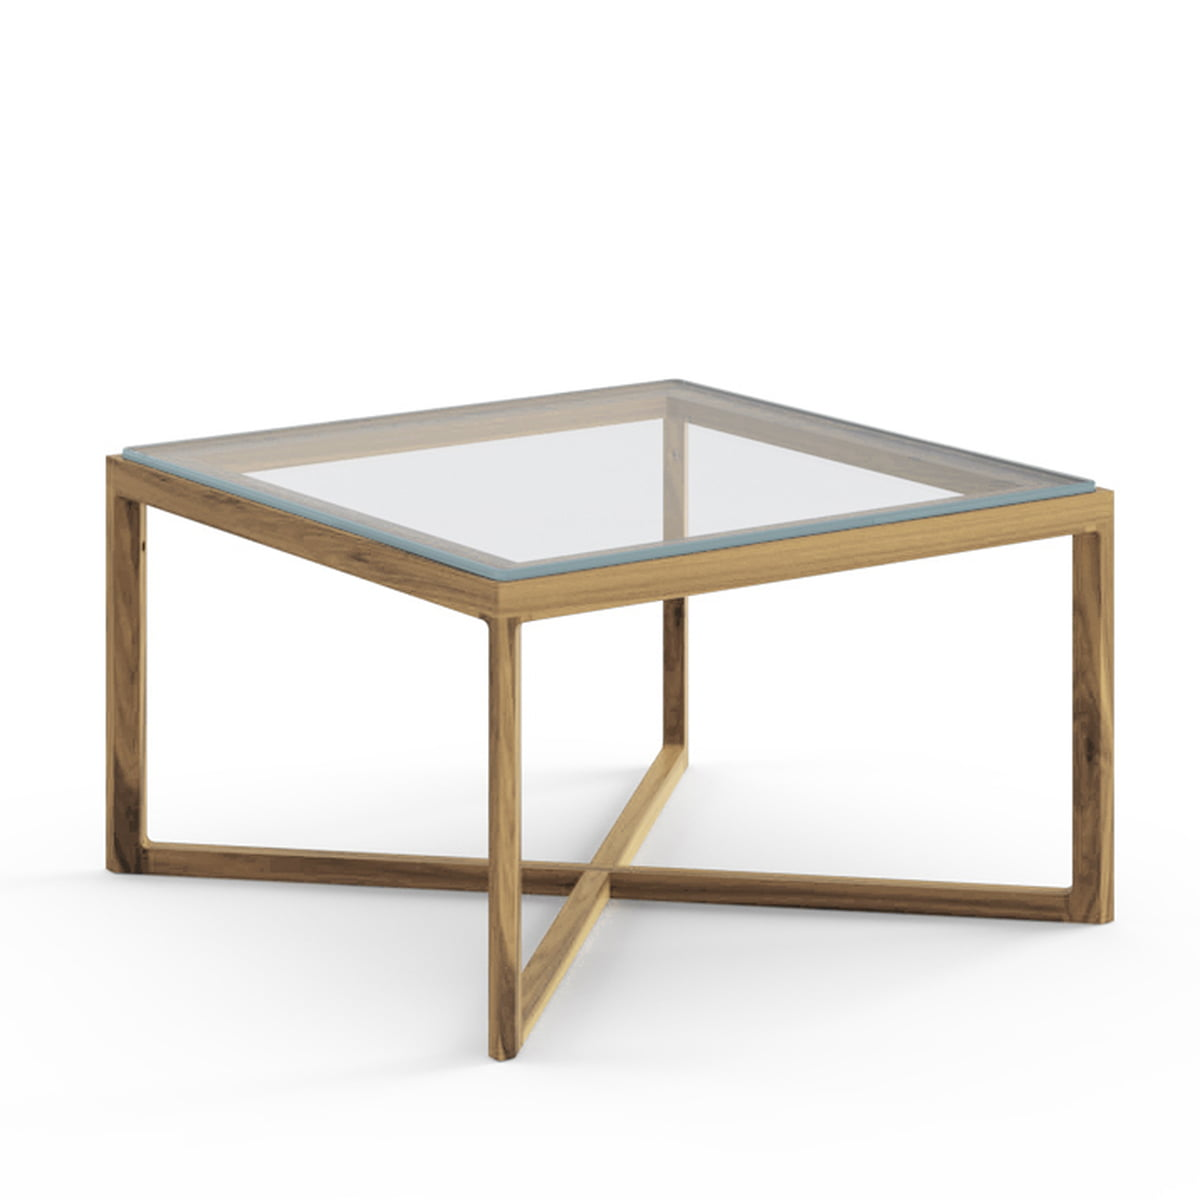 The Marc Krusin Side Table from Knoll